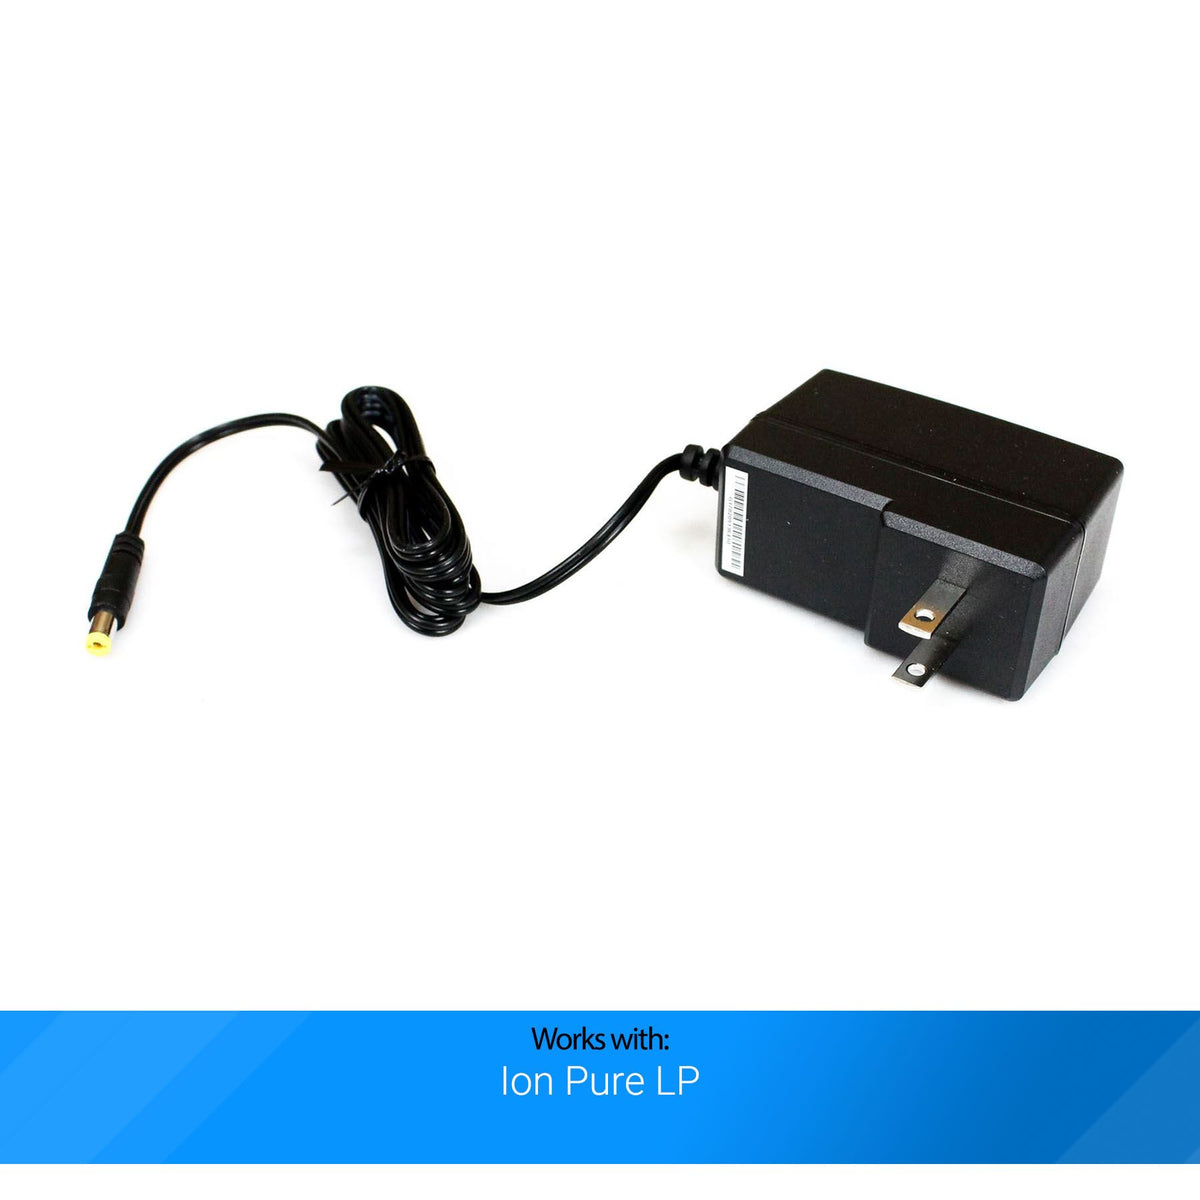 Ion Pure LP Power Adapter